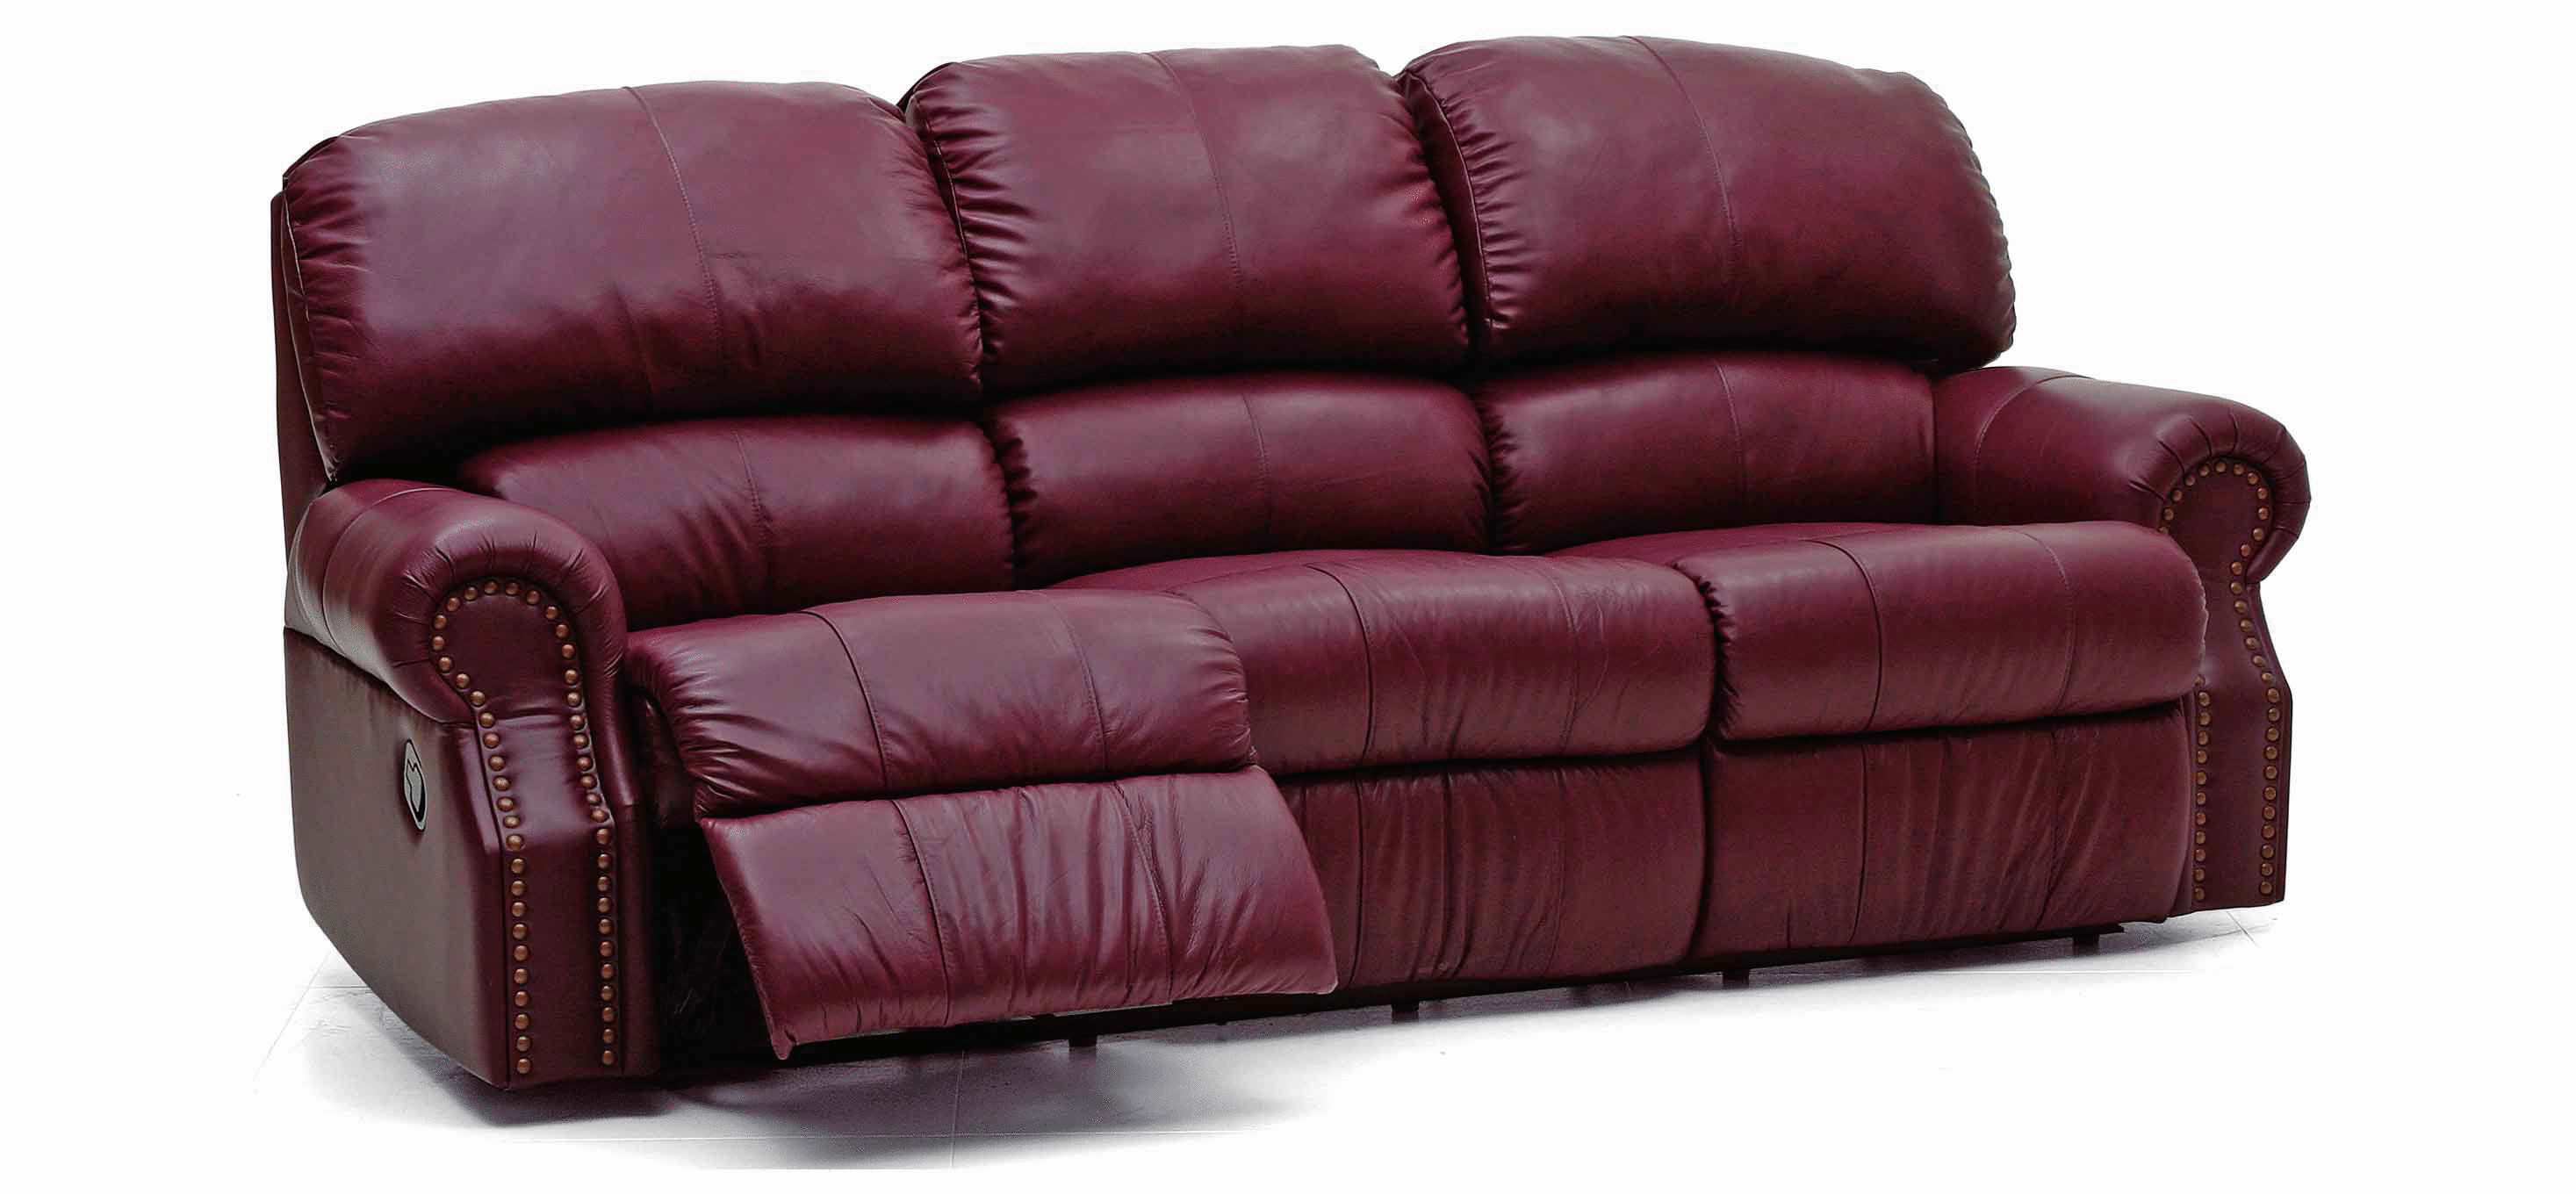 301 moved permanently Leather loveseat recliners